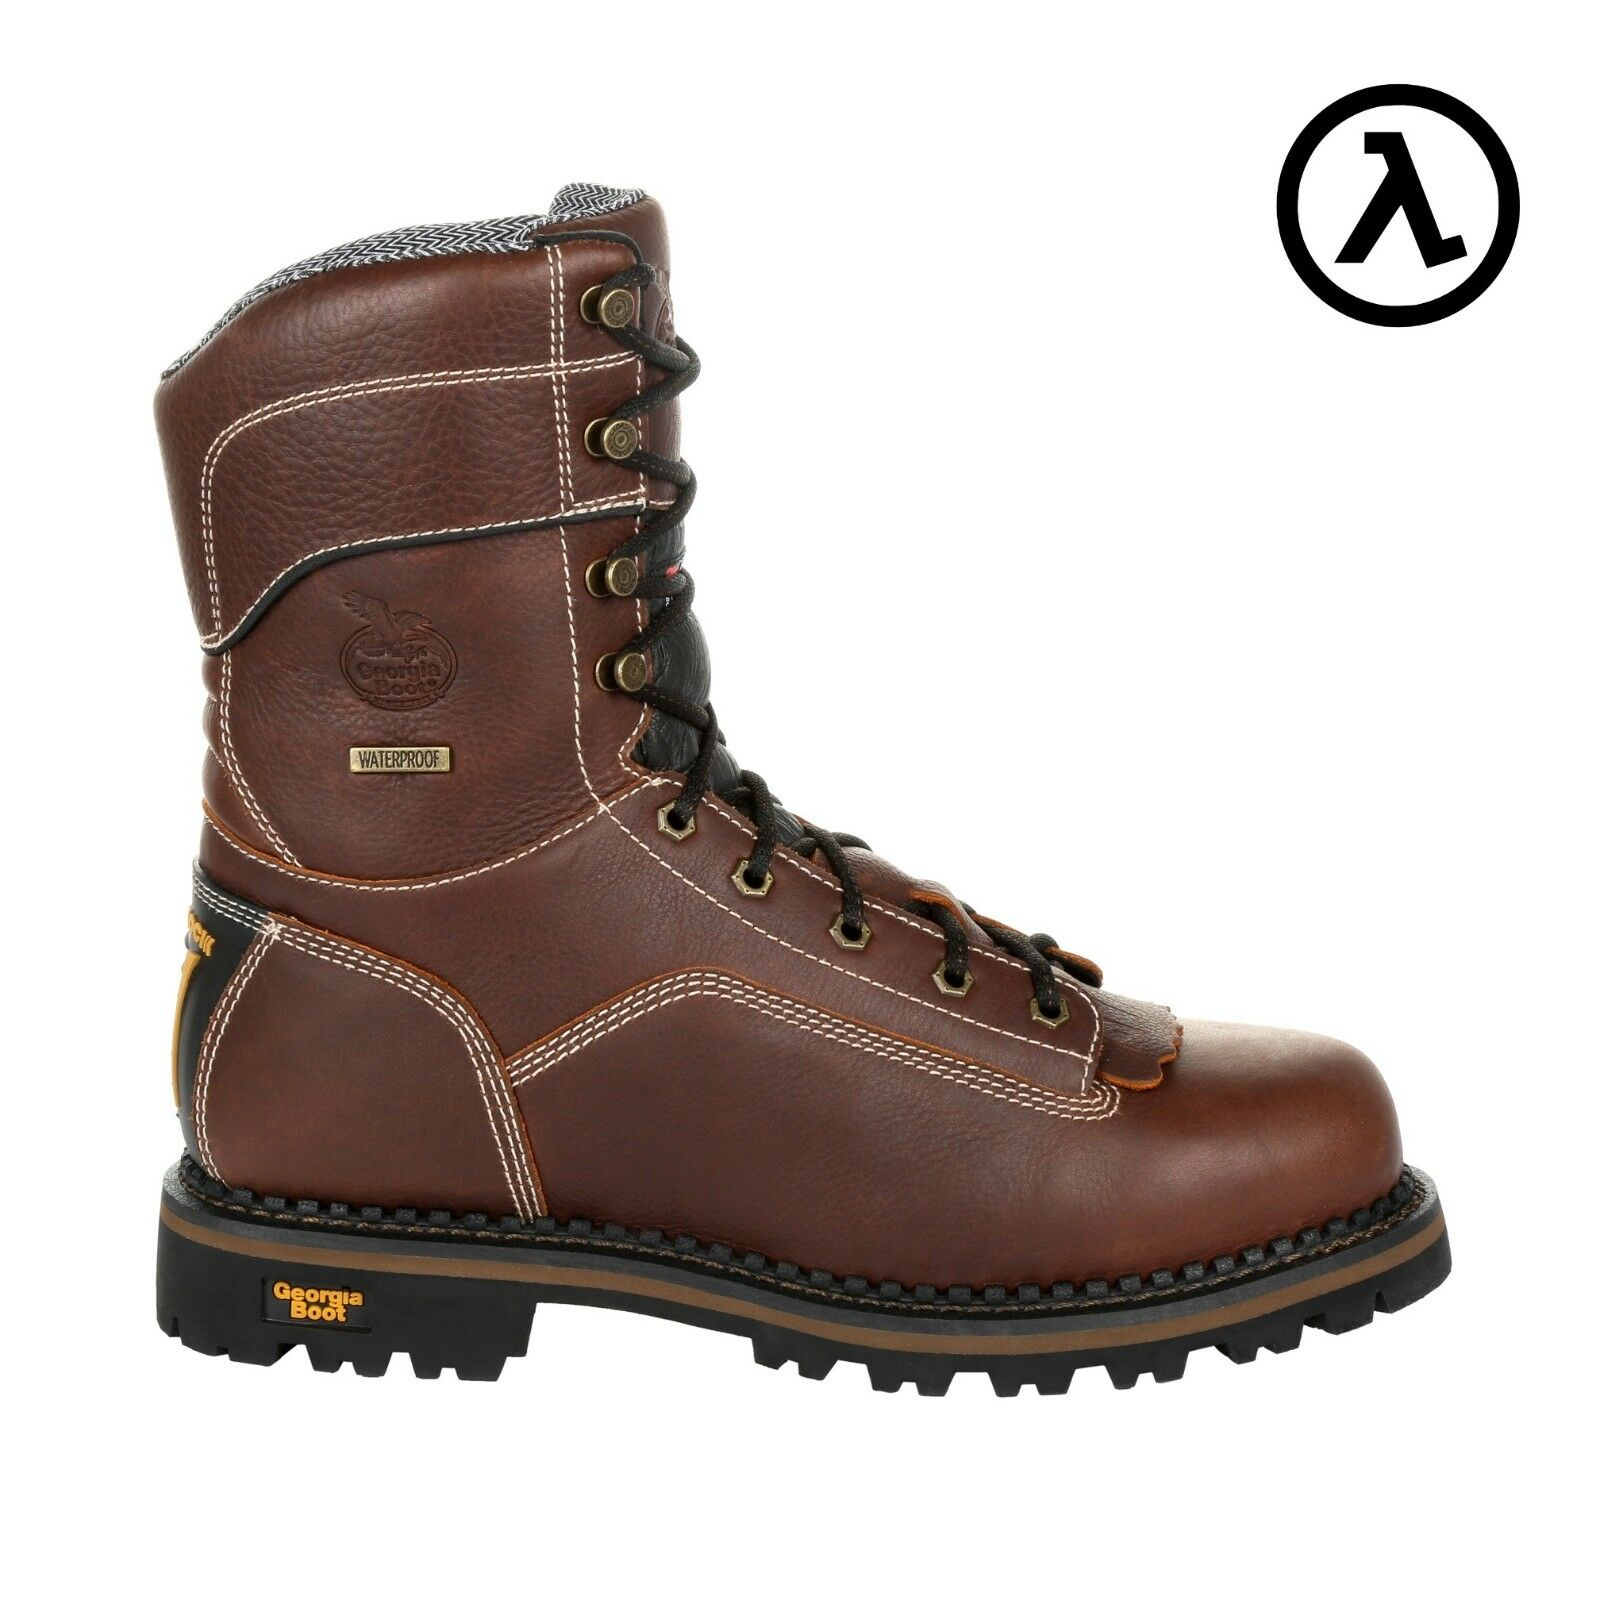 GEORGIA AMP LT LOGGER WATERPROOF 400G INSULATED WORK BOOTS GB00260  ALL SIZES